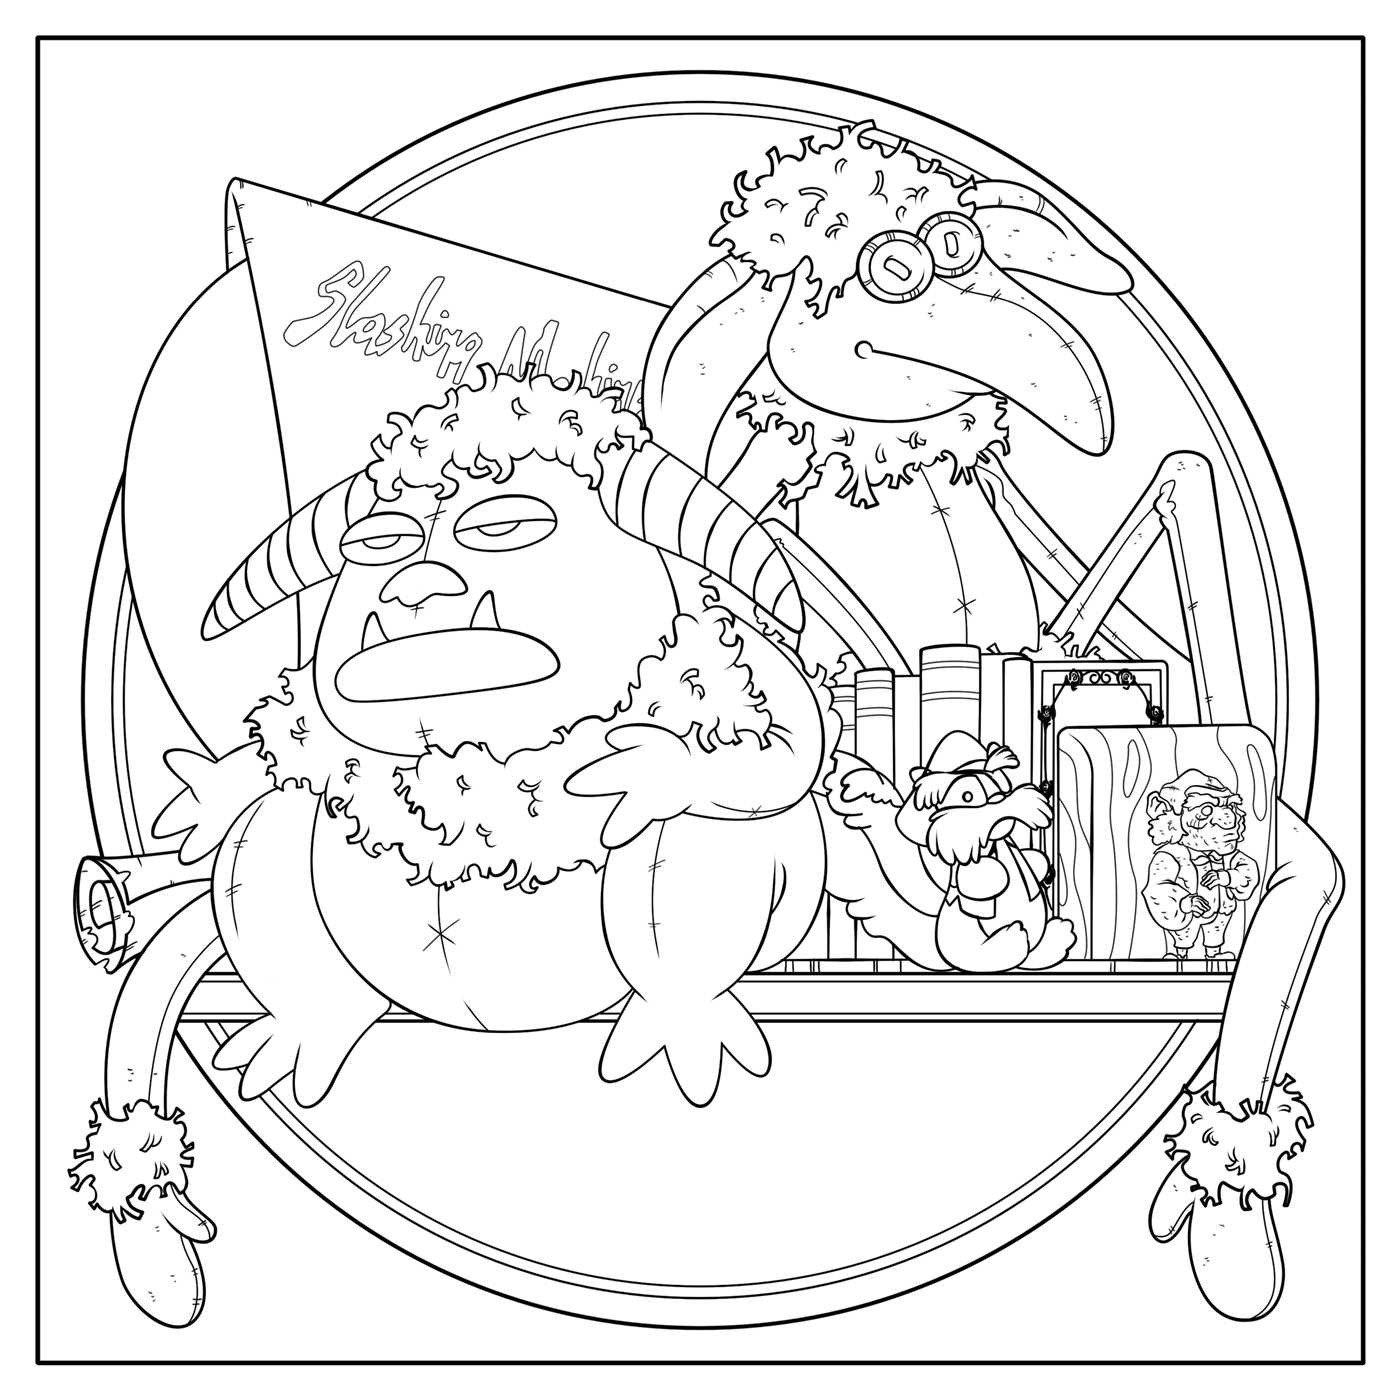 Muppet Stuff: Labyrinth Coloring Book Now Available!